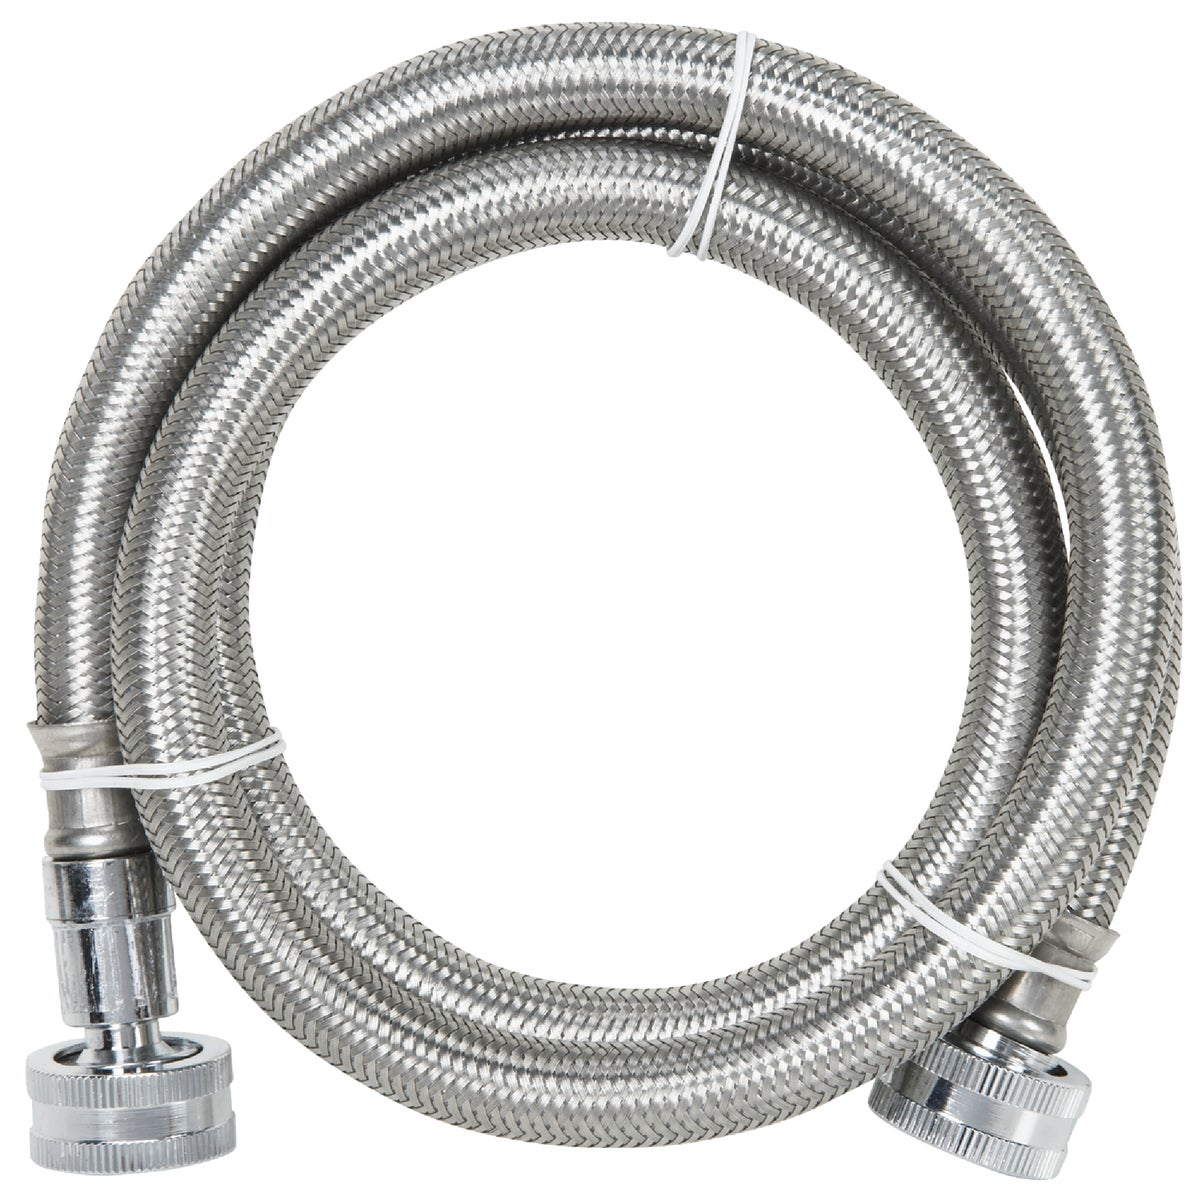 "48"" FLDSAFE WASHMCH HOSE - LFFSPBSPL48-1212 by Watts Regulator Co"